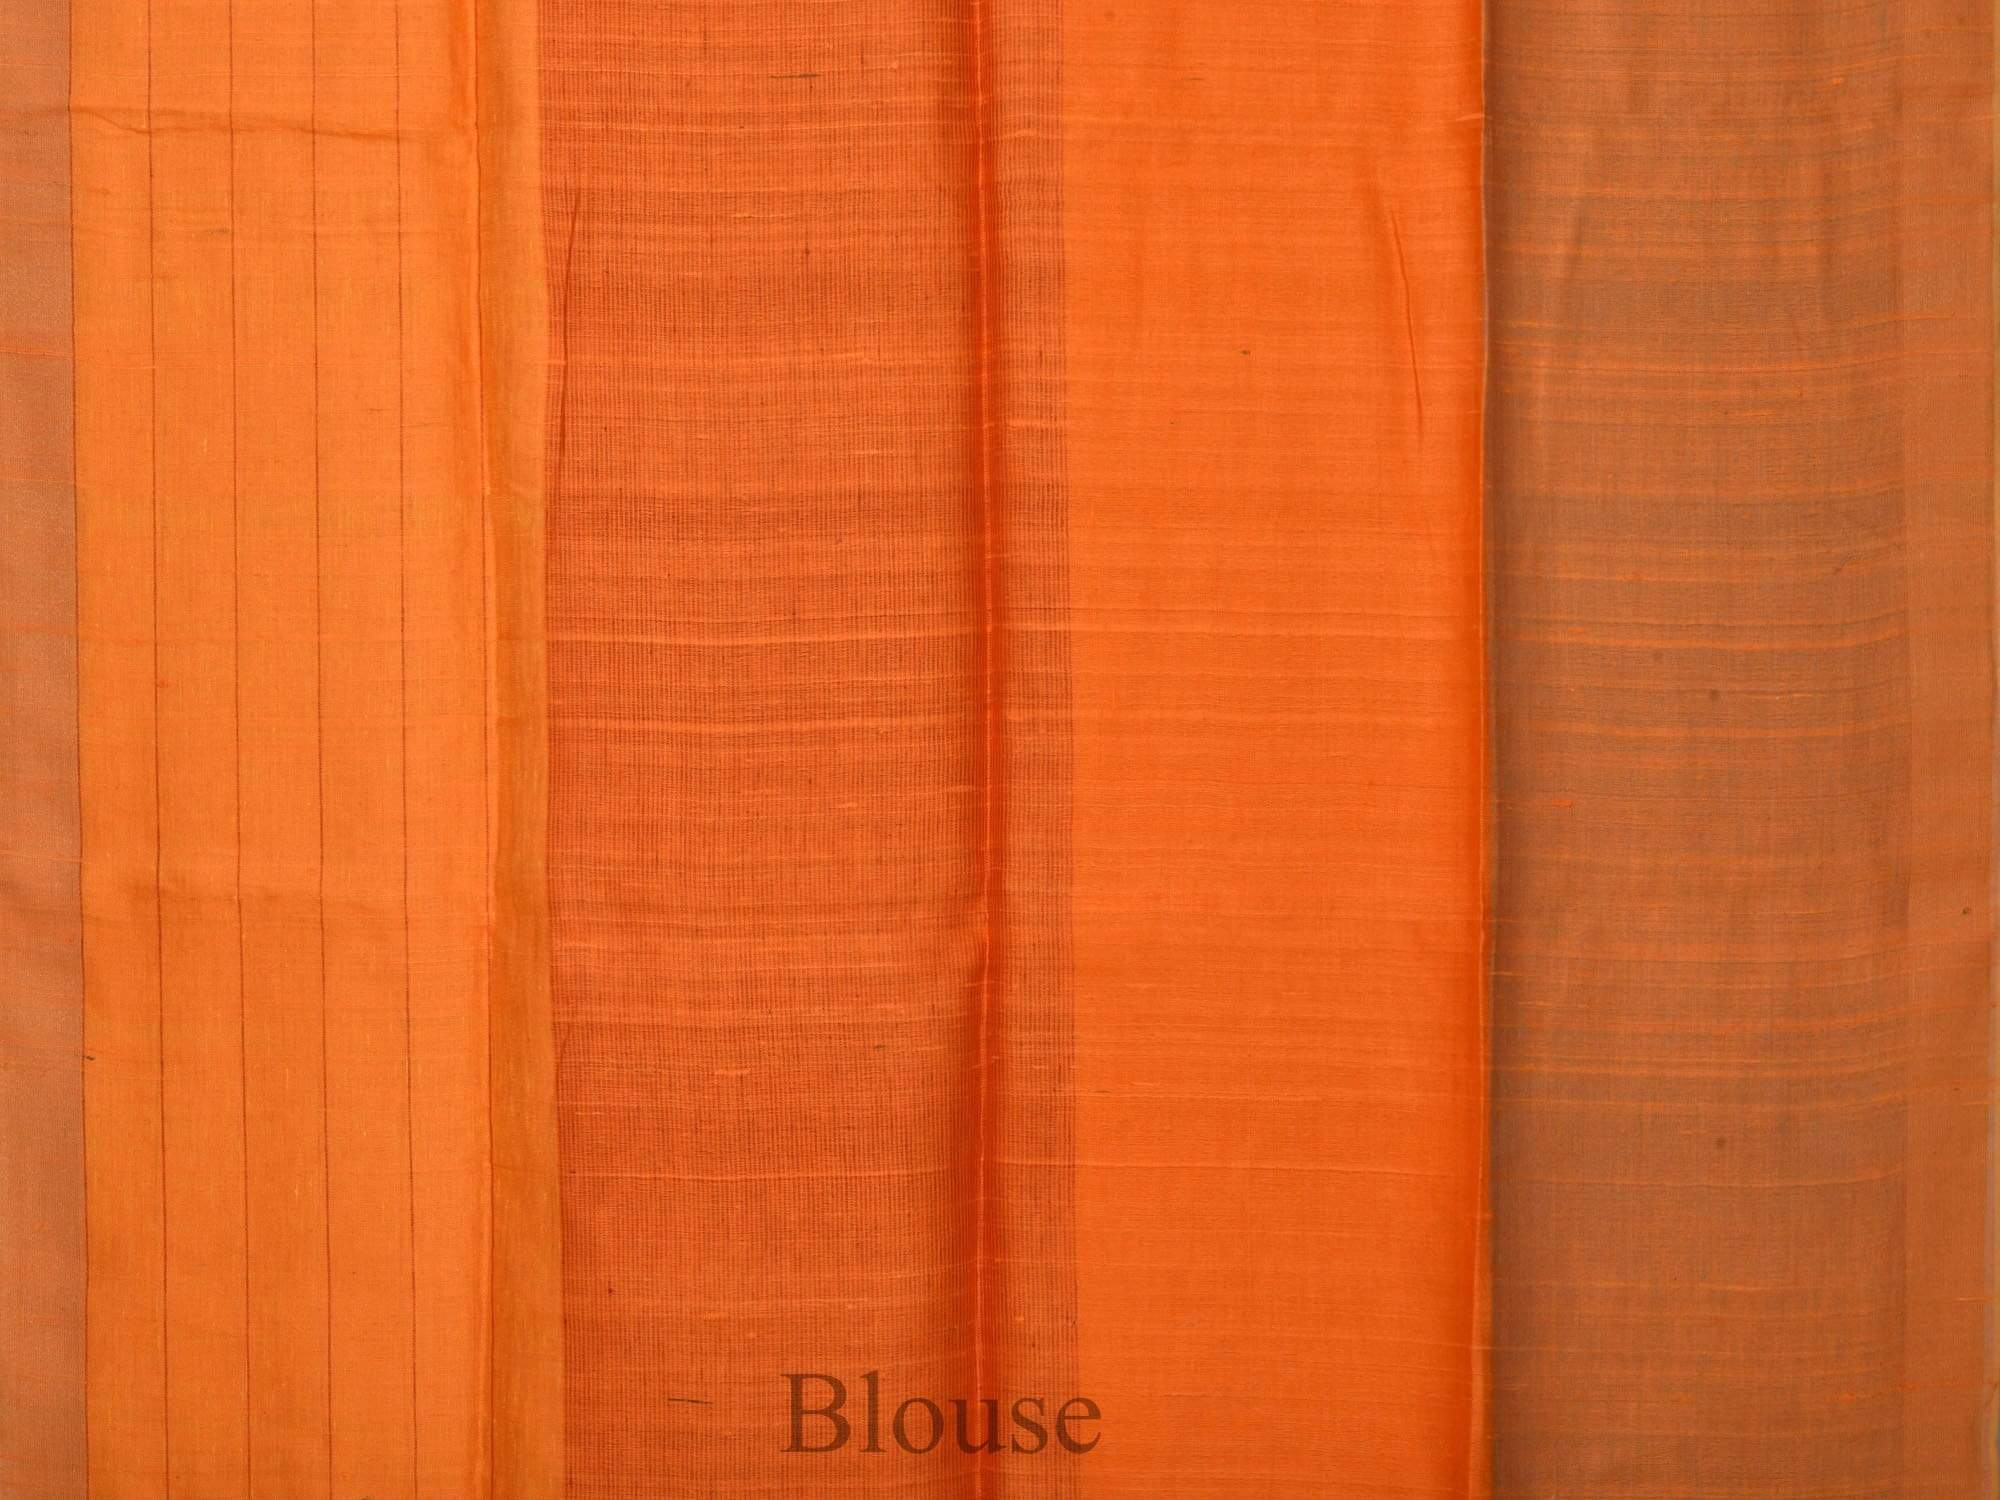 Orange Linen Handloom Saree with Quad Color Design o0146